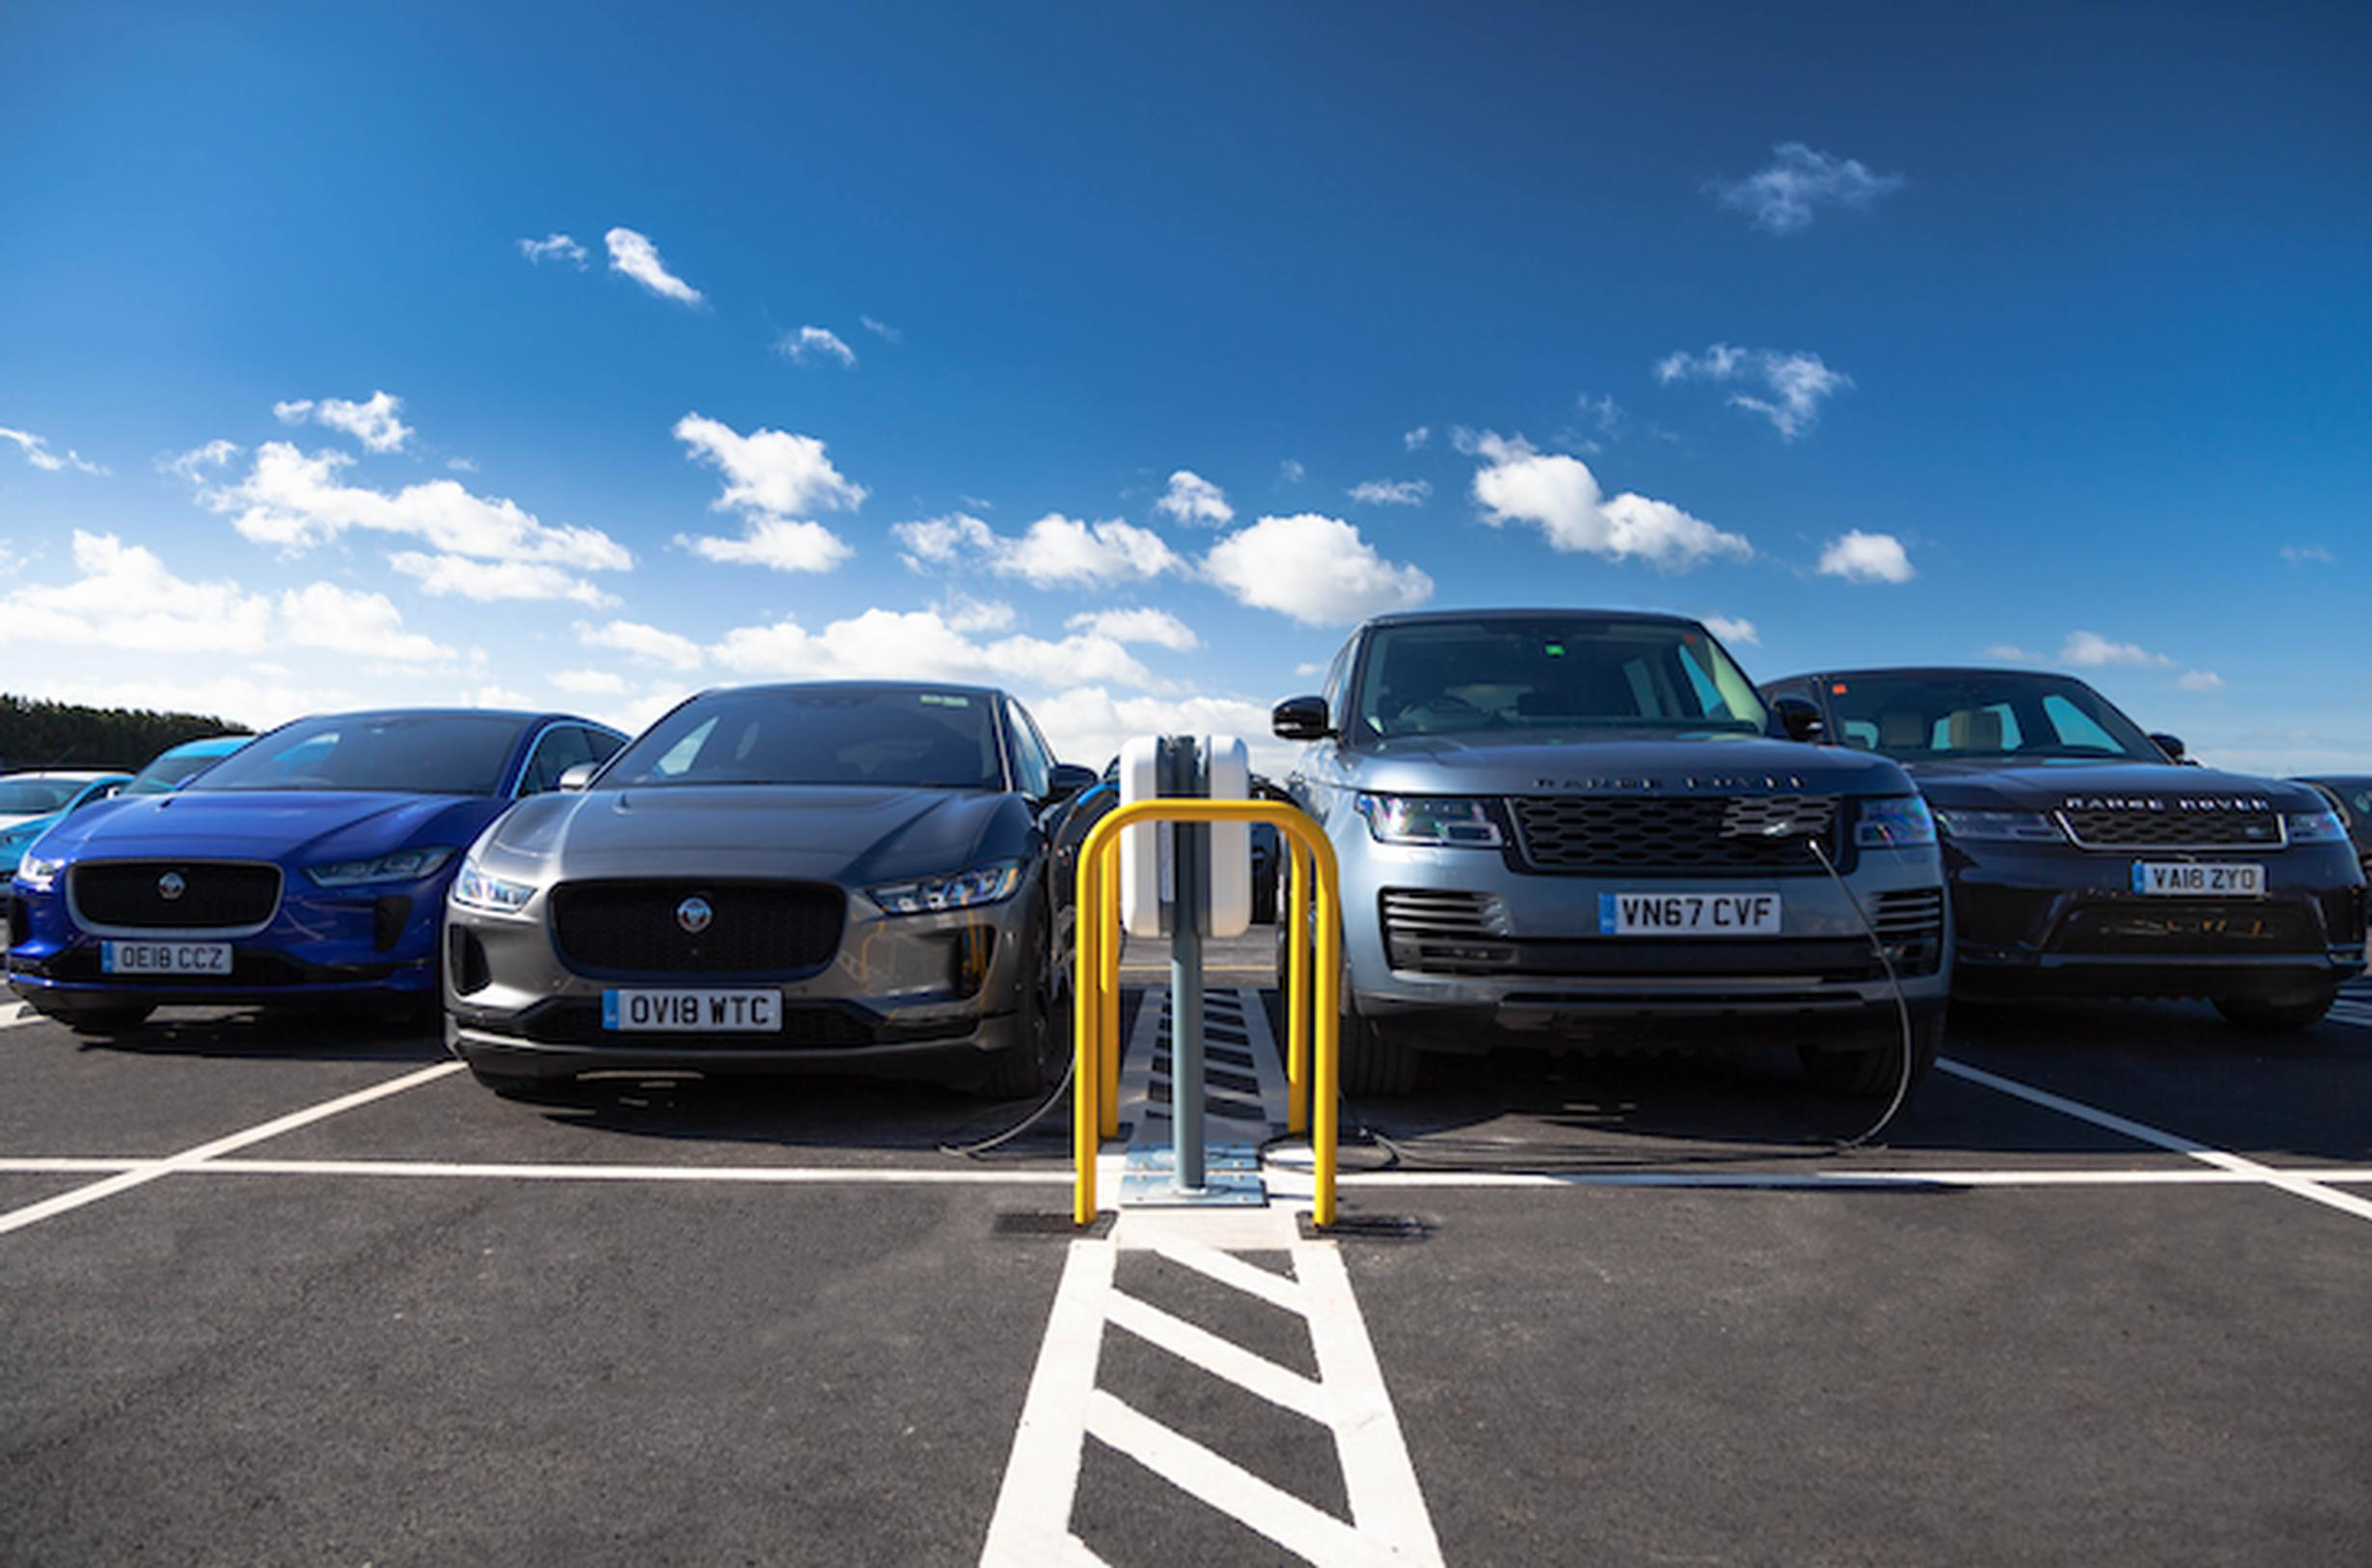 7kW AC smart charging stations a Gaydon